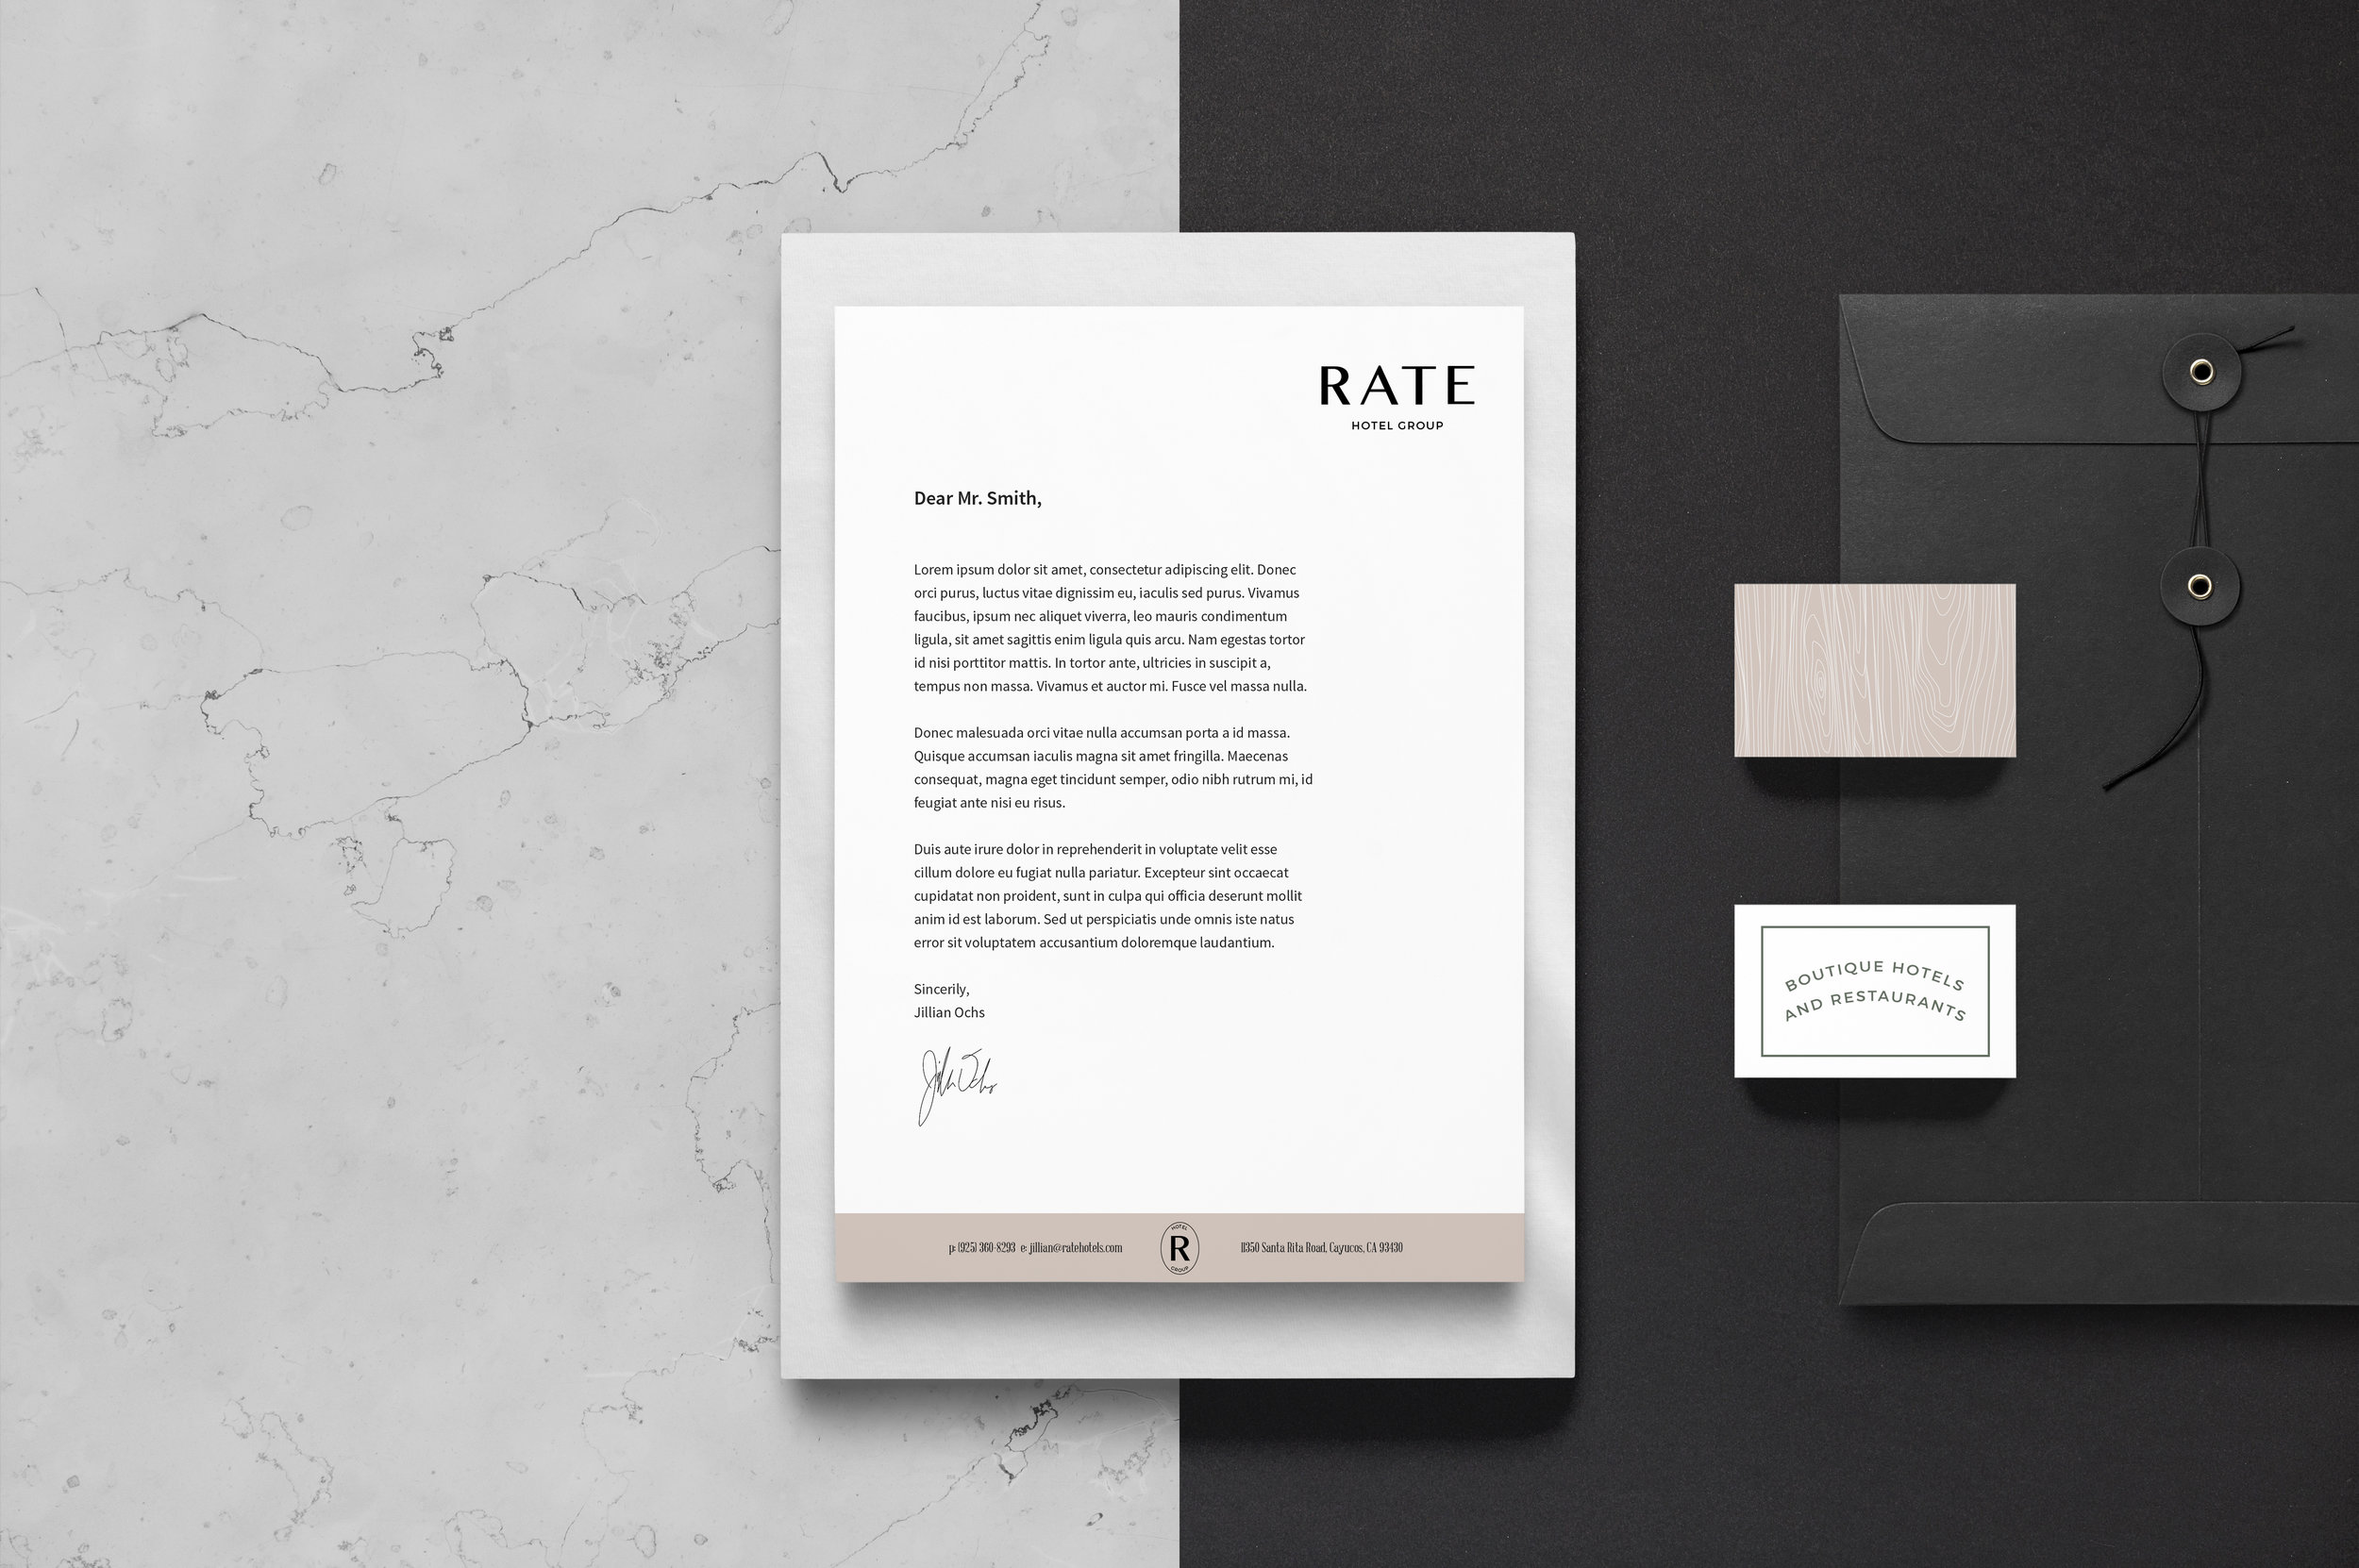 RATE Hotel Group Brand Design: Stationery Design   Reux Design Co.   Boutique Branding Studio for Holistic and Conscious Small Businesses